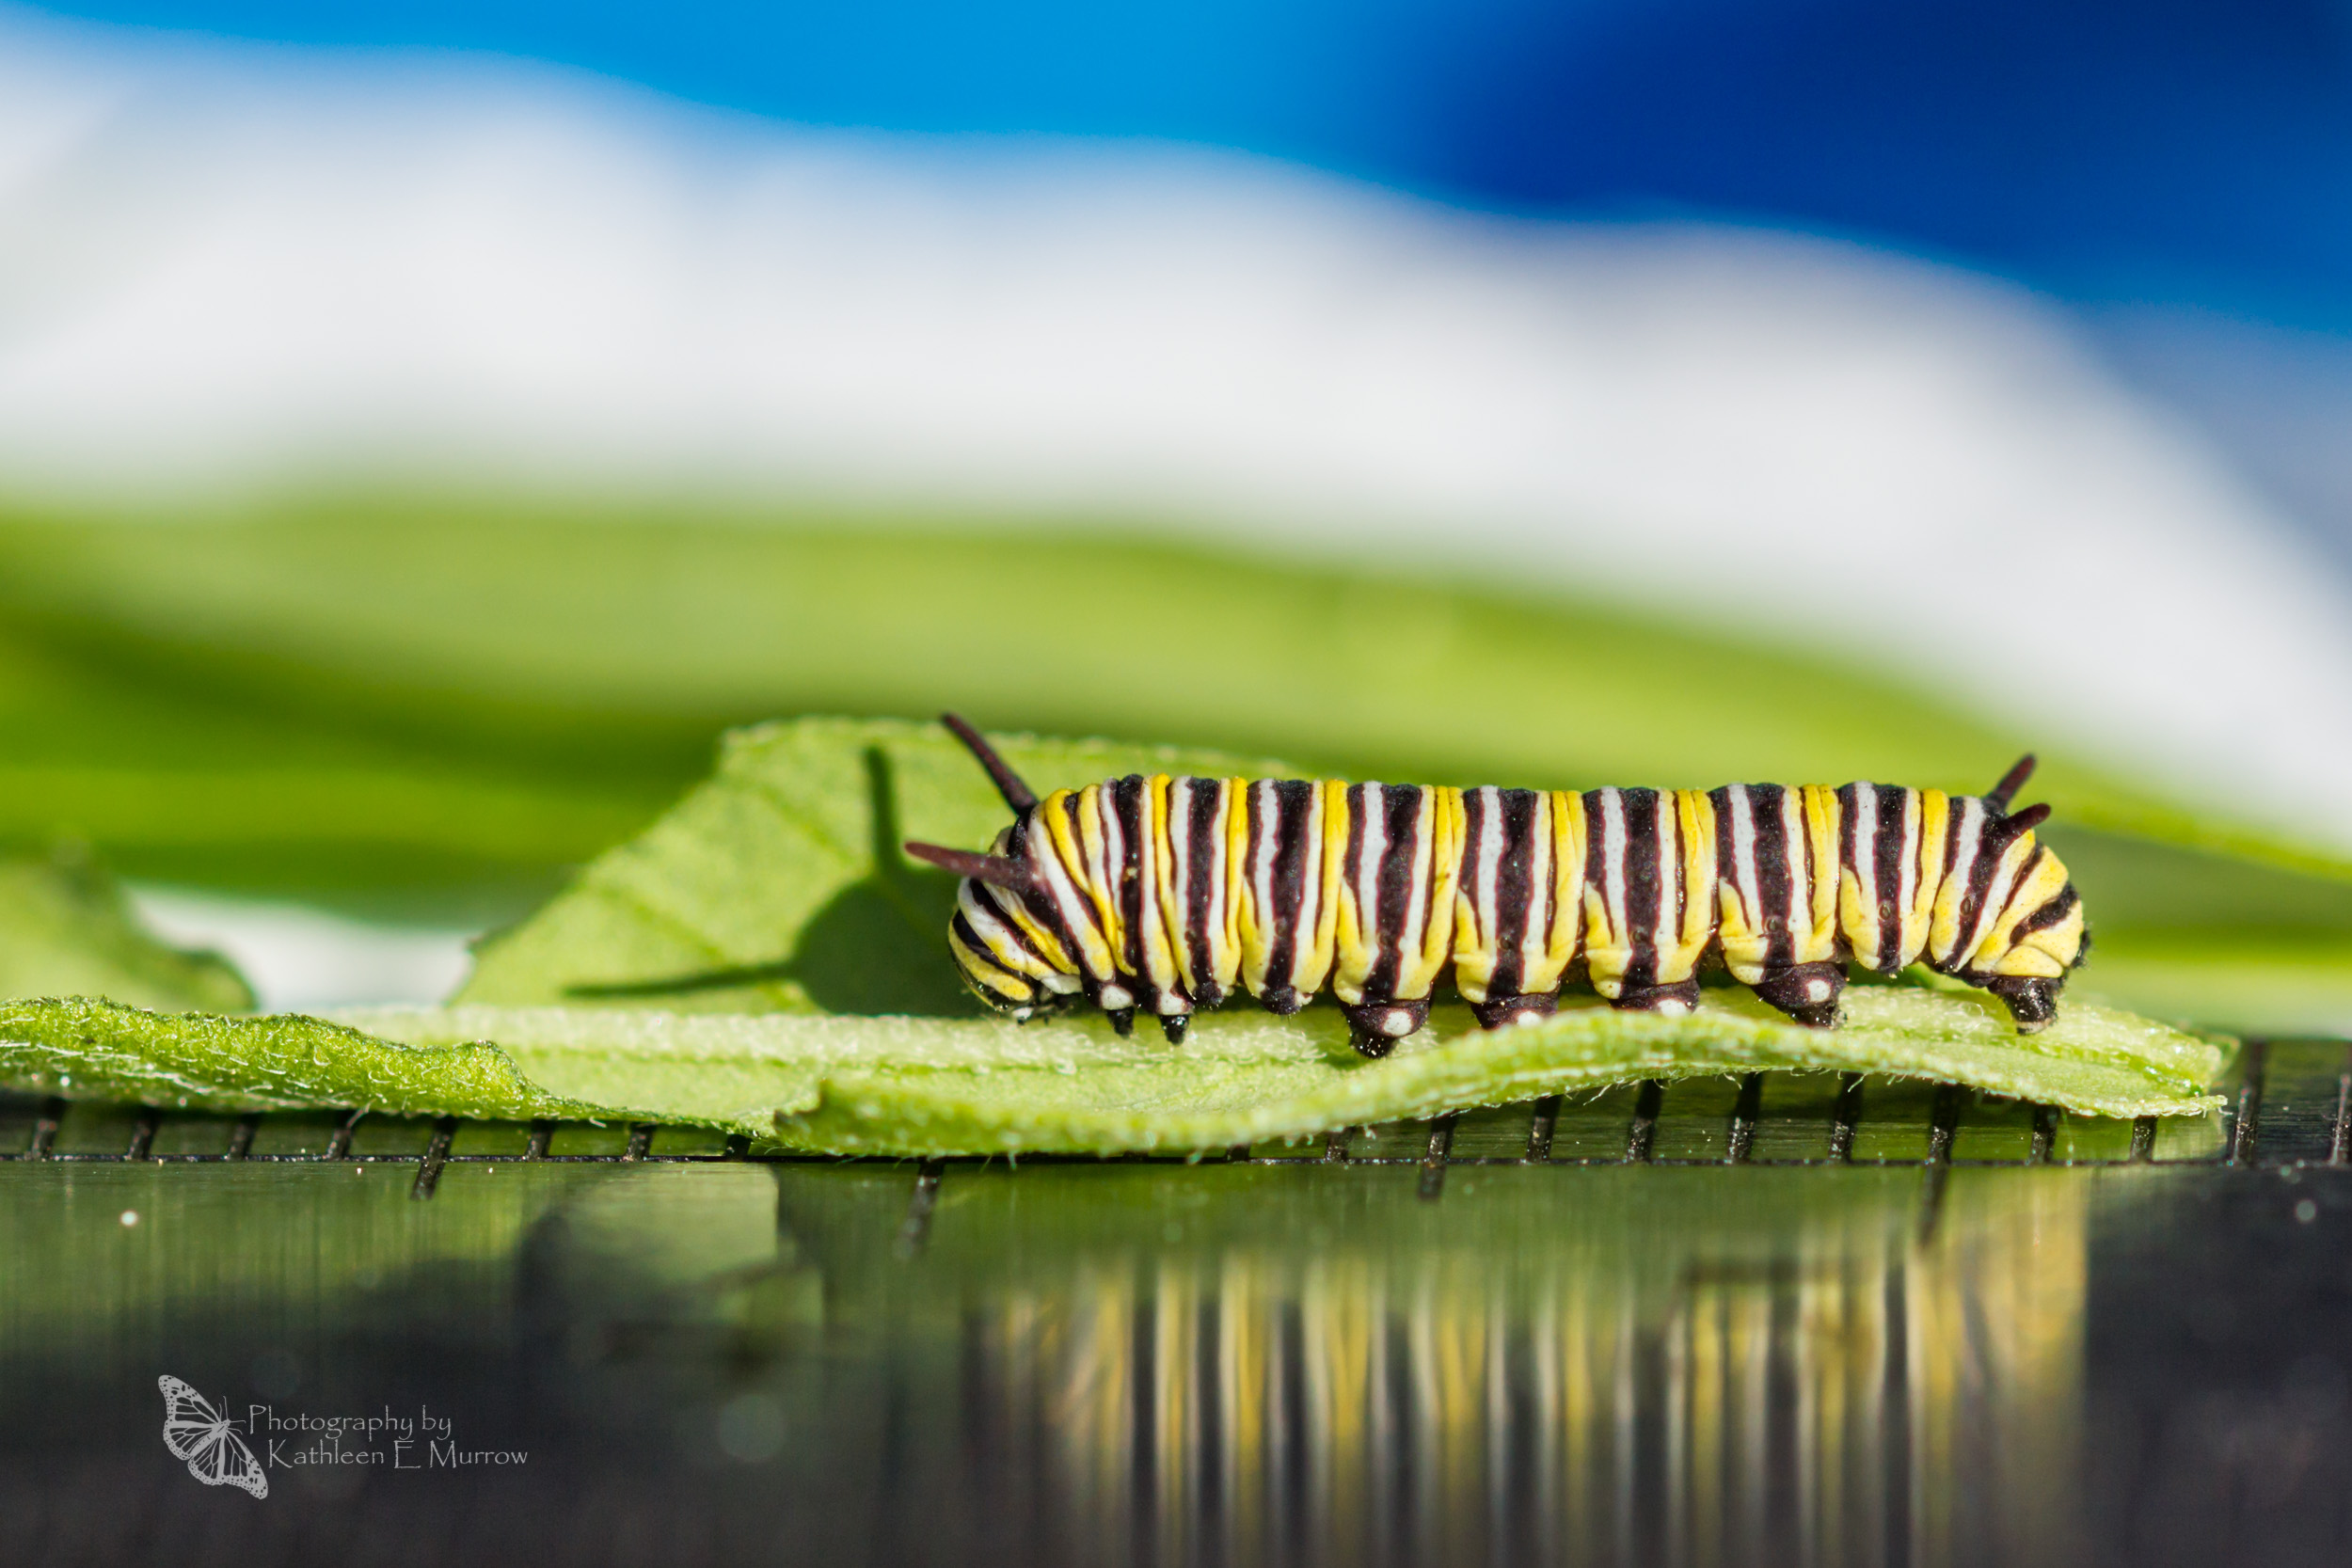 A third (3rd) instar caterpillar of the monarch butterfly on a leaf, its black, white, and yellow stripes reflected in a metal ruler